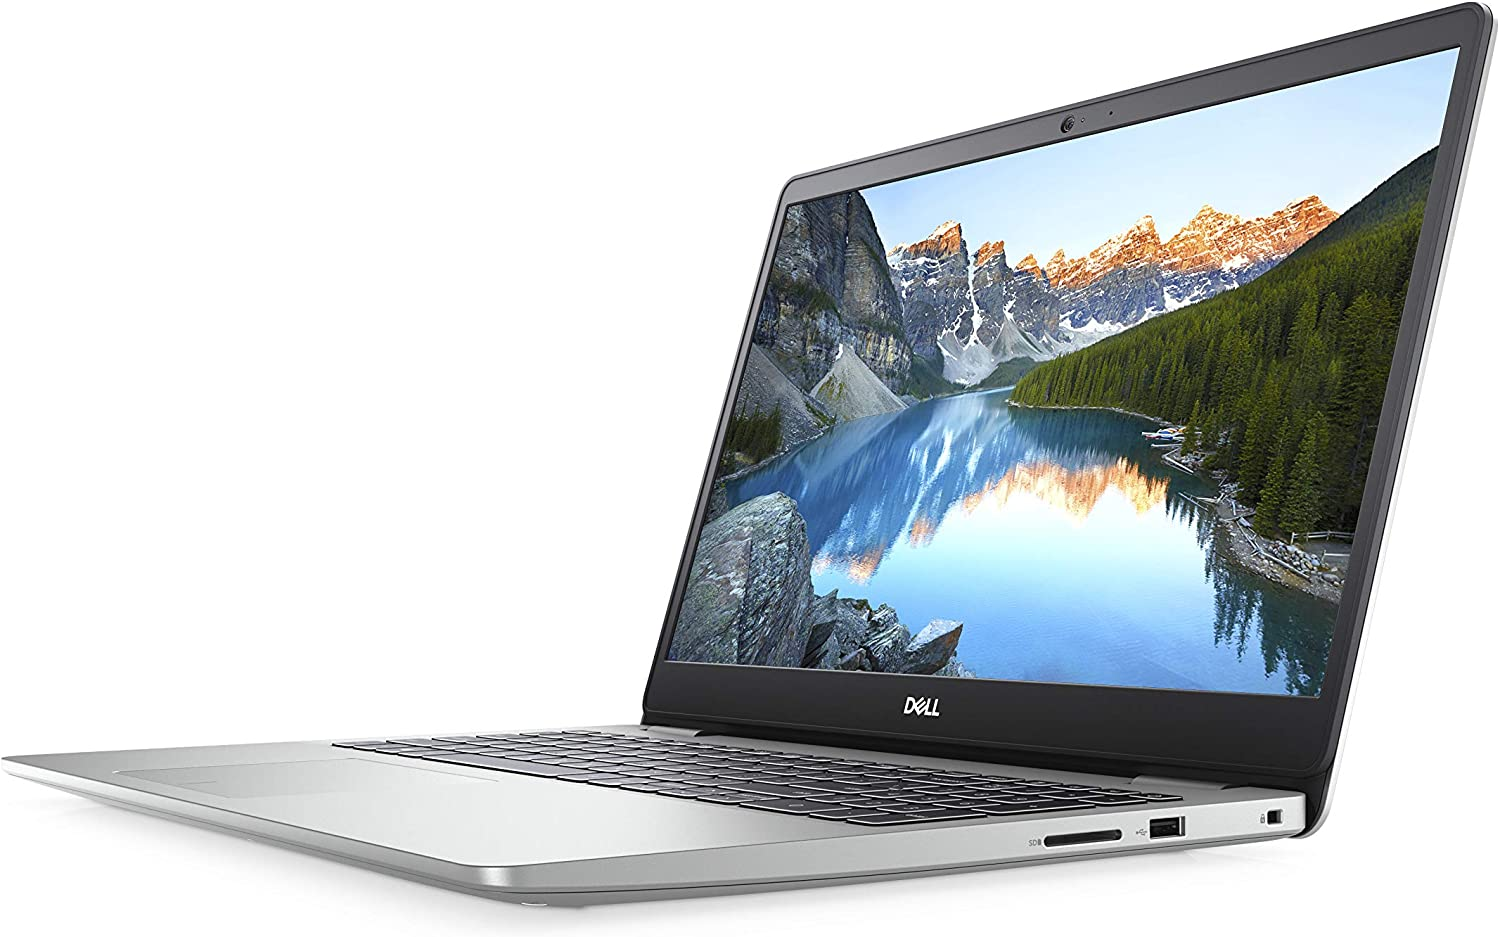 """2020 Latest Business Laptop Dell Inspiron 15 5000 5593 15.6"""" Full HD 1080p Touch Screen 10th Gen Intel Core i7-1065G7 32GB RAM   1TB SSD   Intel UHD Graphics Backlit KB Win10 Pro with TD 32g USB Drive"""